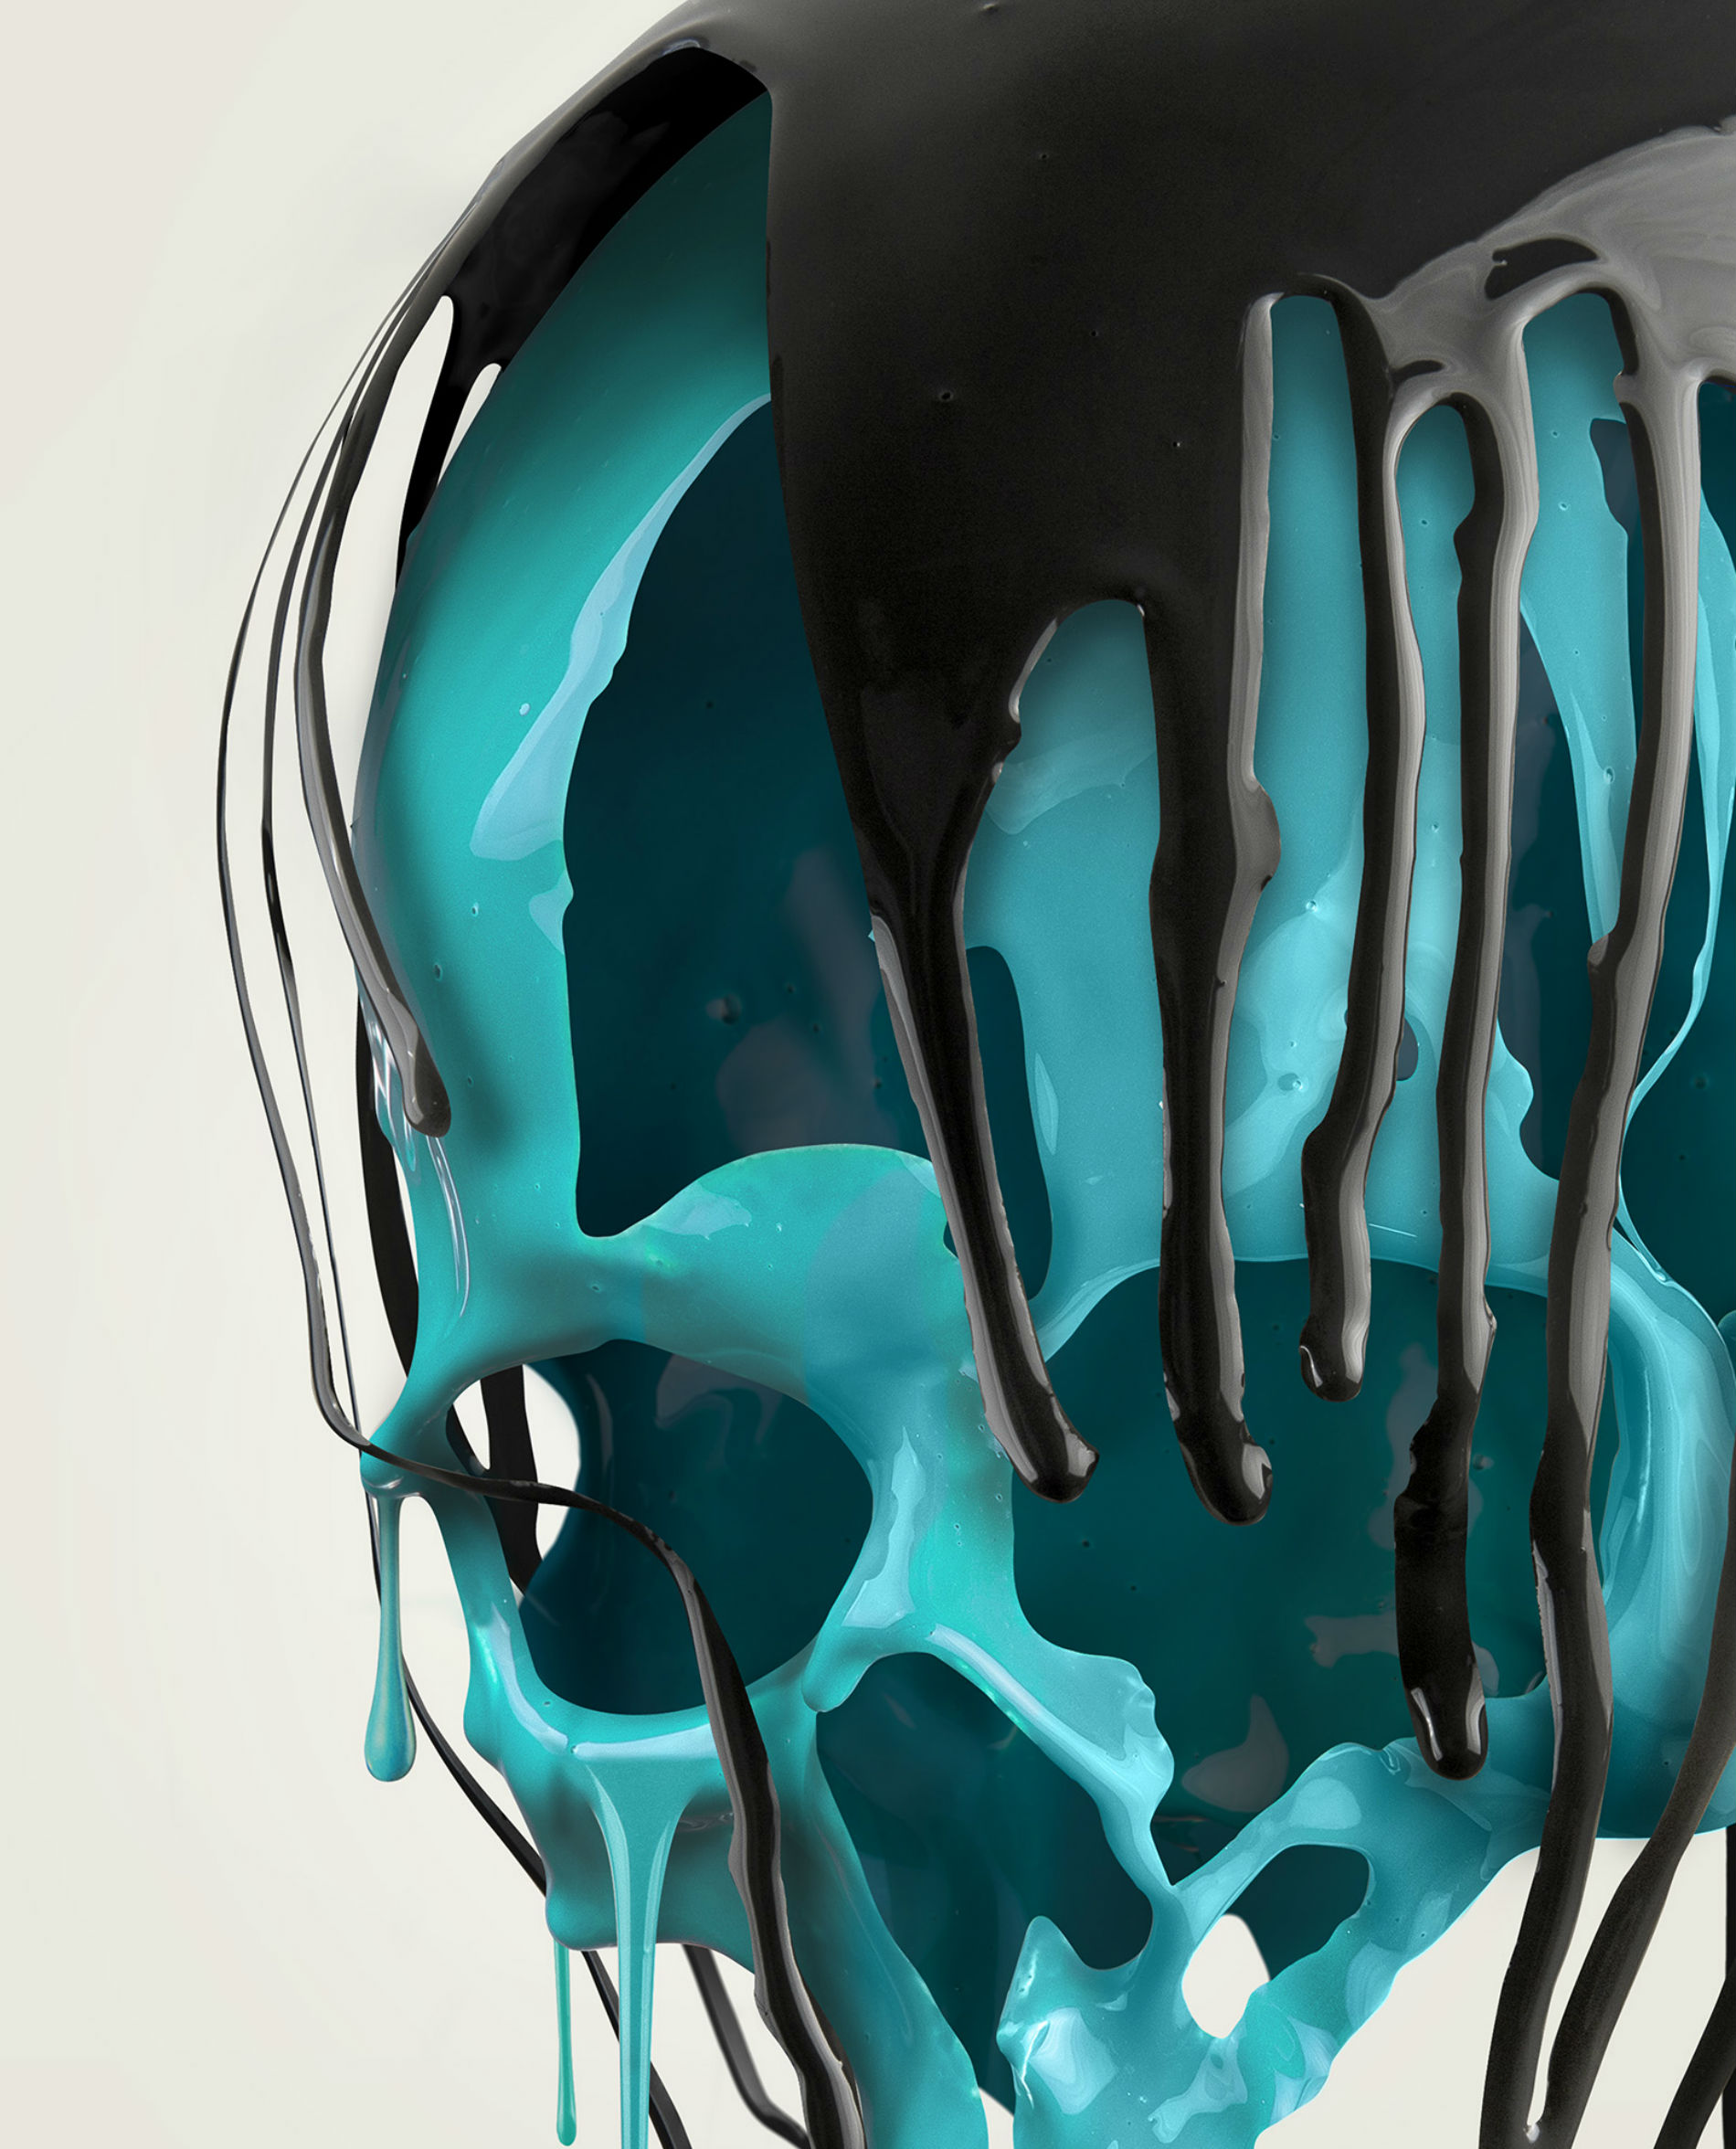 paul hollingworth digital skull green black art